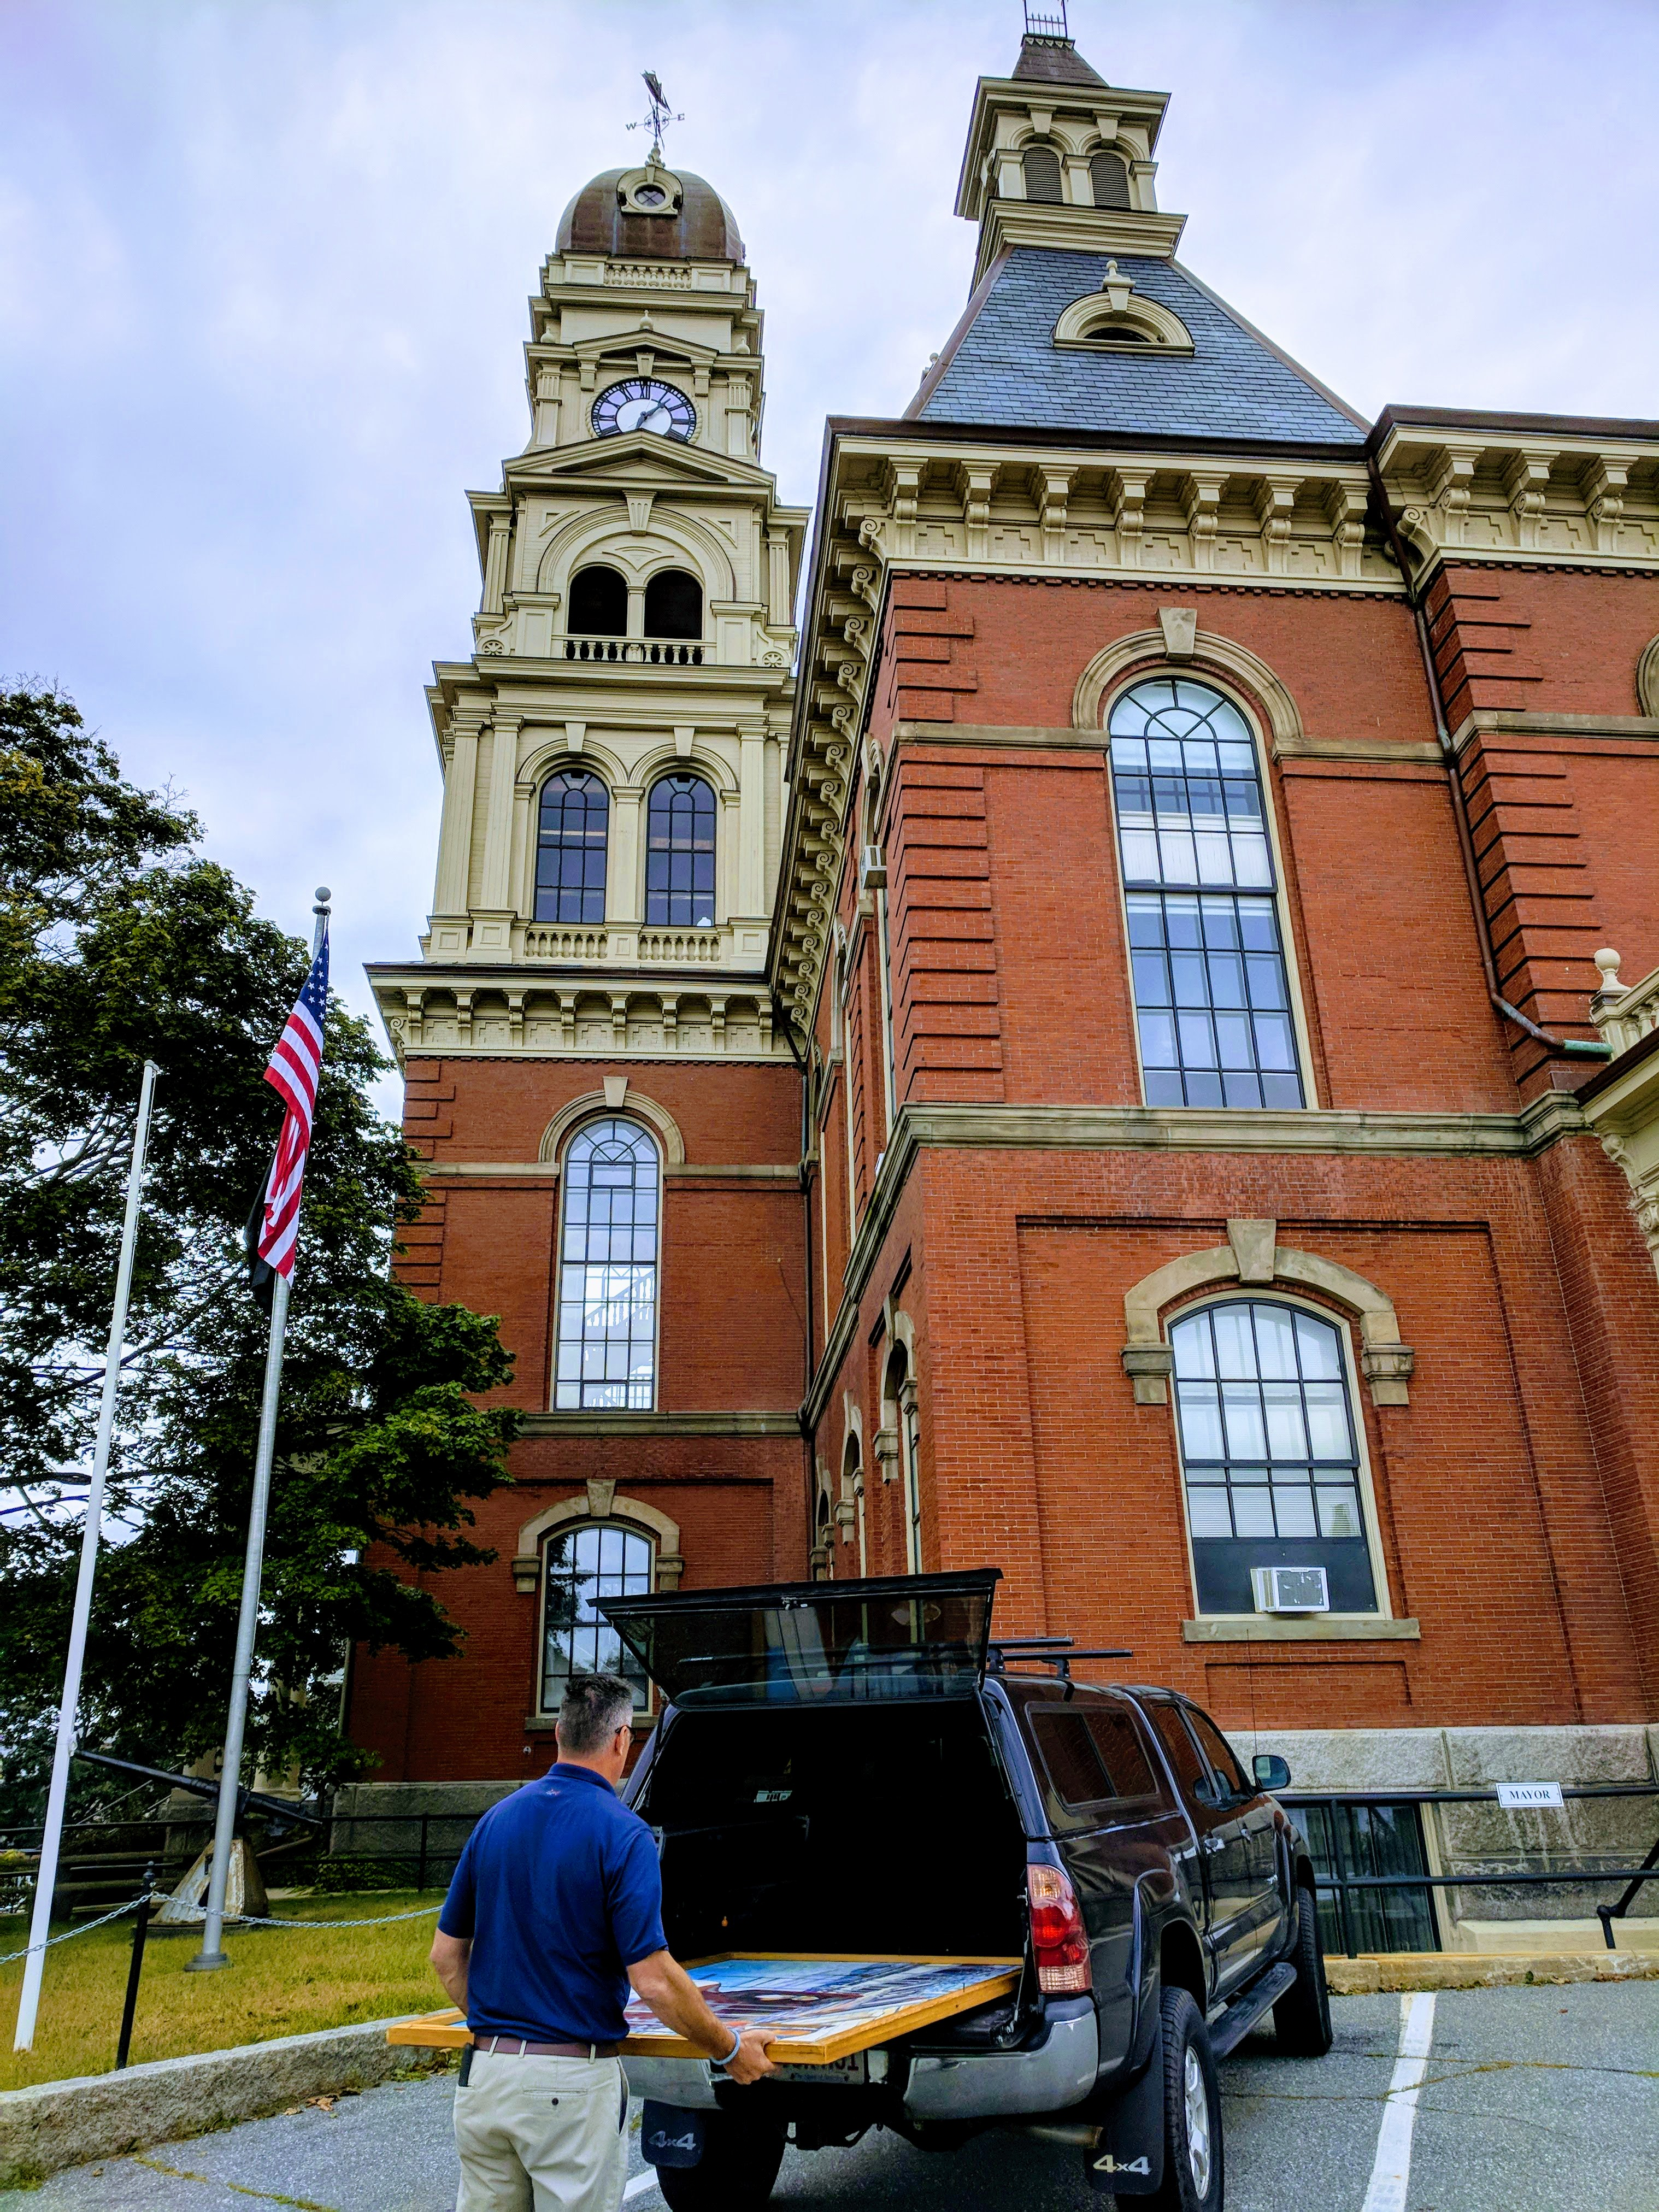 DPW rescue_Mike Hale KEN GORE back to City Hall after conservato repair necessary due to ill choice for wall label_ nasty epoxy migrated to painting surface_20180907_©c ryan.jpg